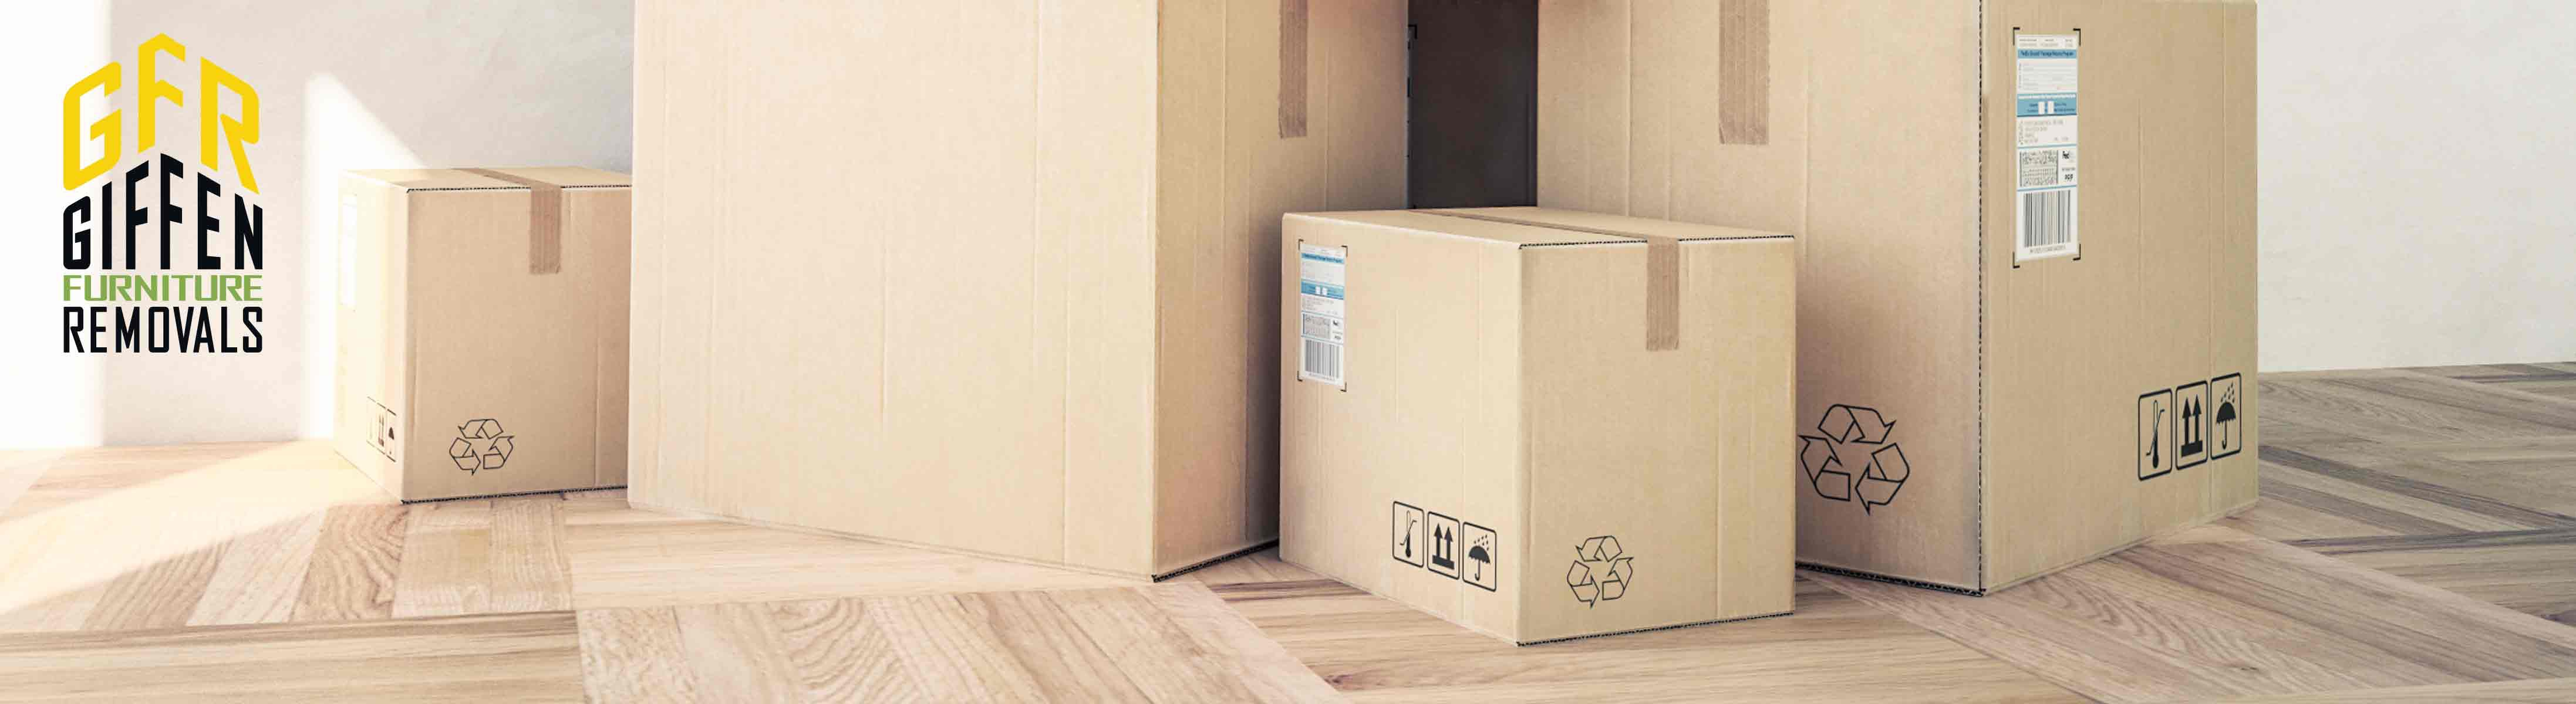 Giffen Furniture Removals Average Cost of Moving Home In Australia